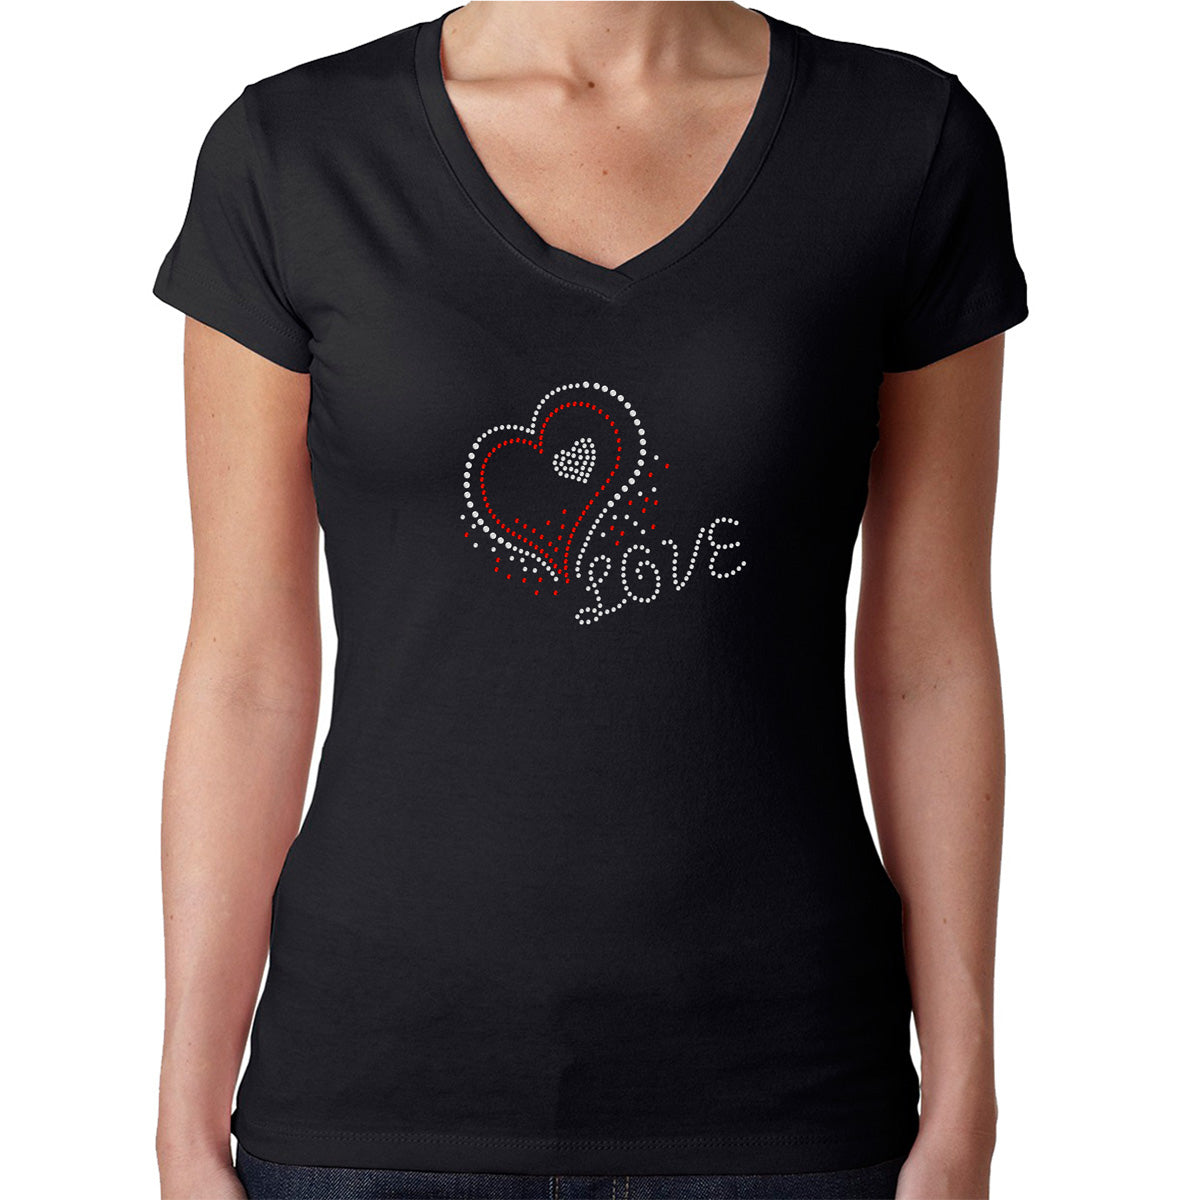 Womens T-Shirt Rhinestone Bling Black Fitted Tee Love Valentines Heart Sparkle